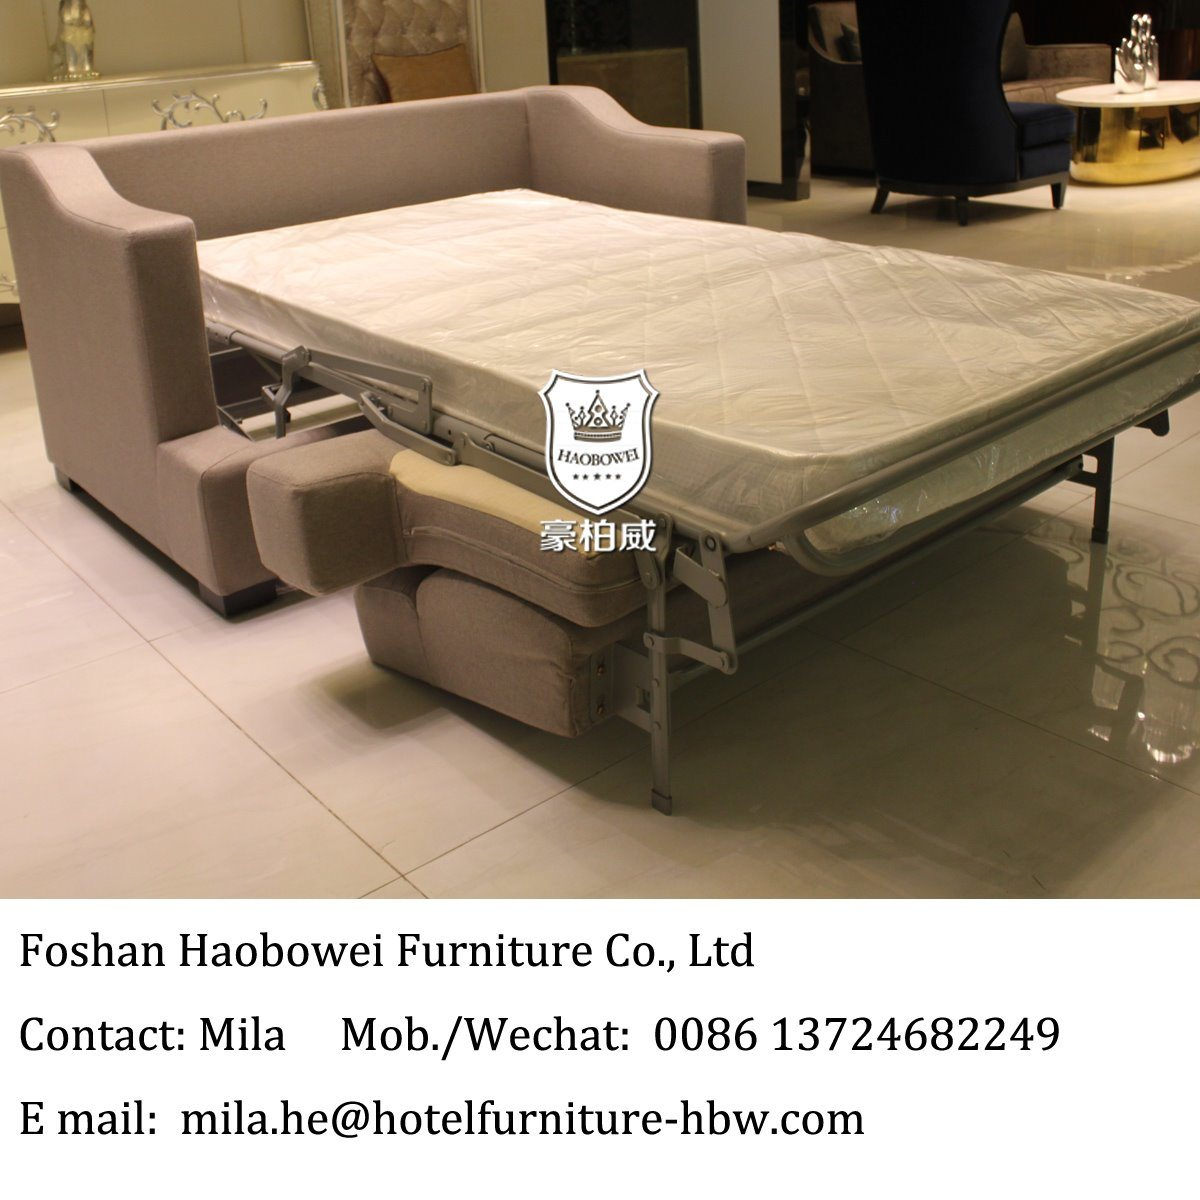 Sofa Wholesalers Uk Hot Item Uk Hilton Hotel Sofa Sleeper For Guest Room Hotel Quality Sofa Bed Supplier